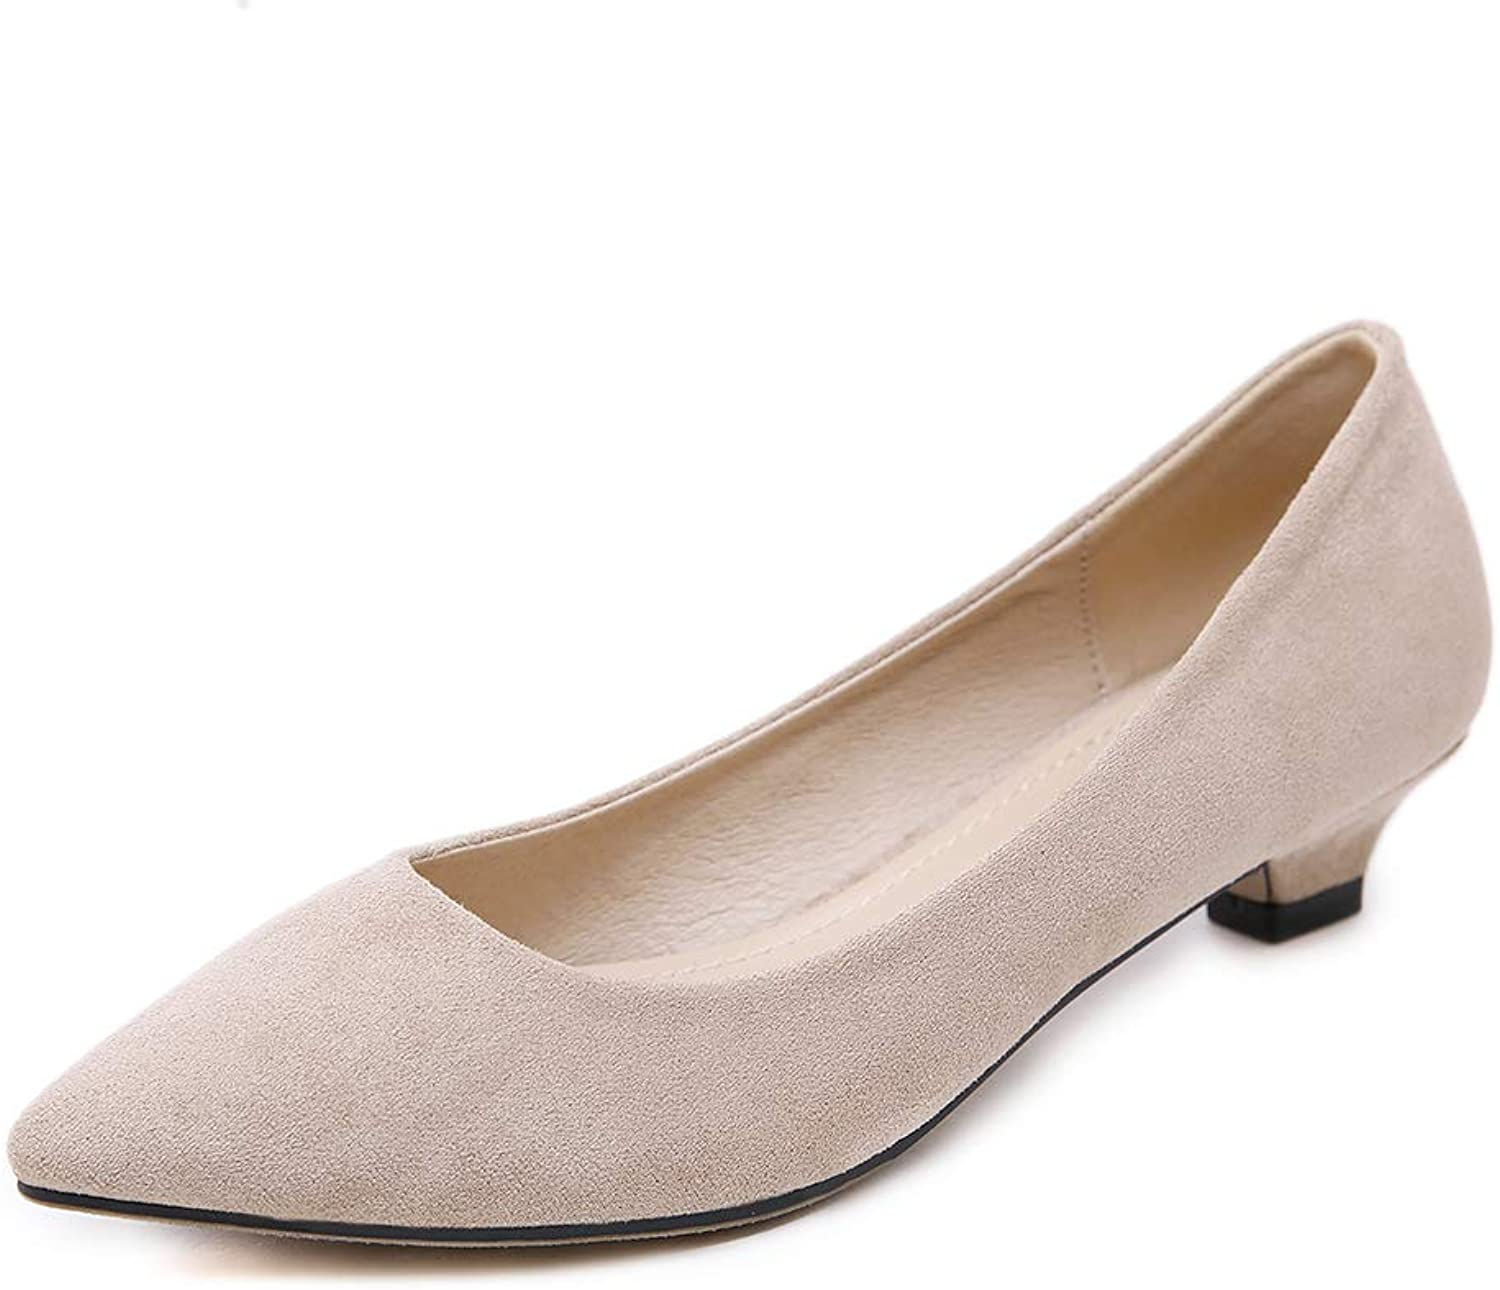 AGOWOO Womens Fashion Pointed Toe Suede Dress Nude shoes Kitten Heels Pumps